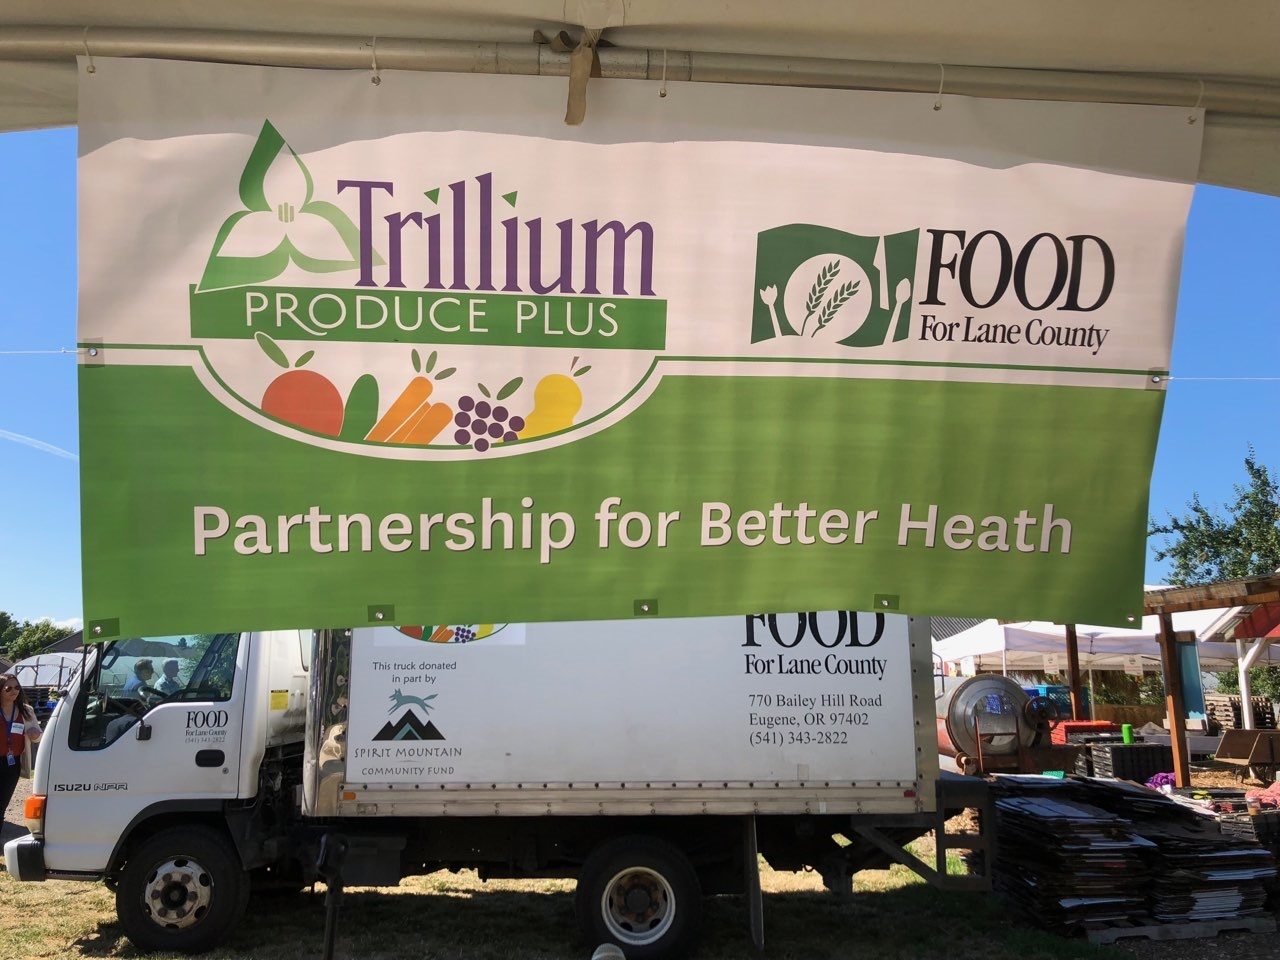 partnership for better health - FOOD For Lane County